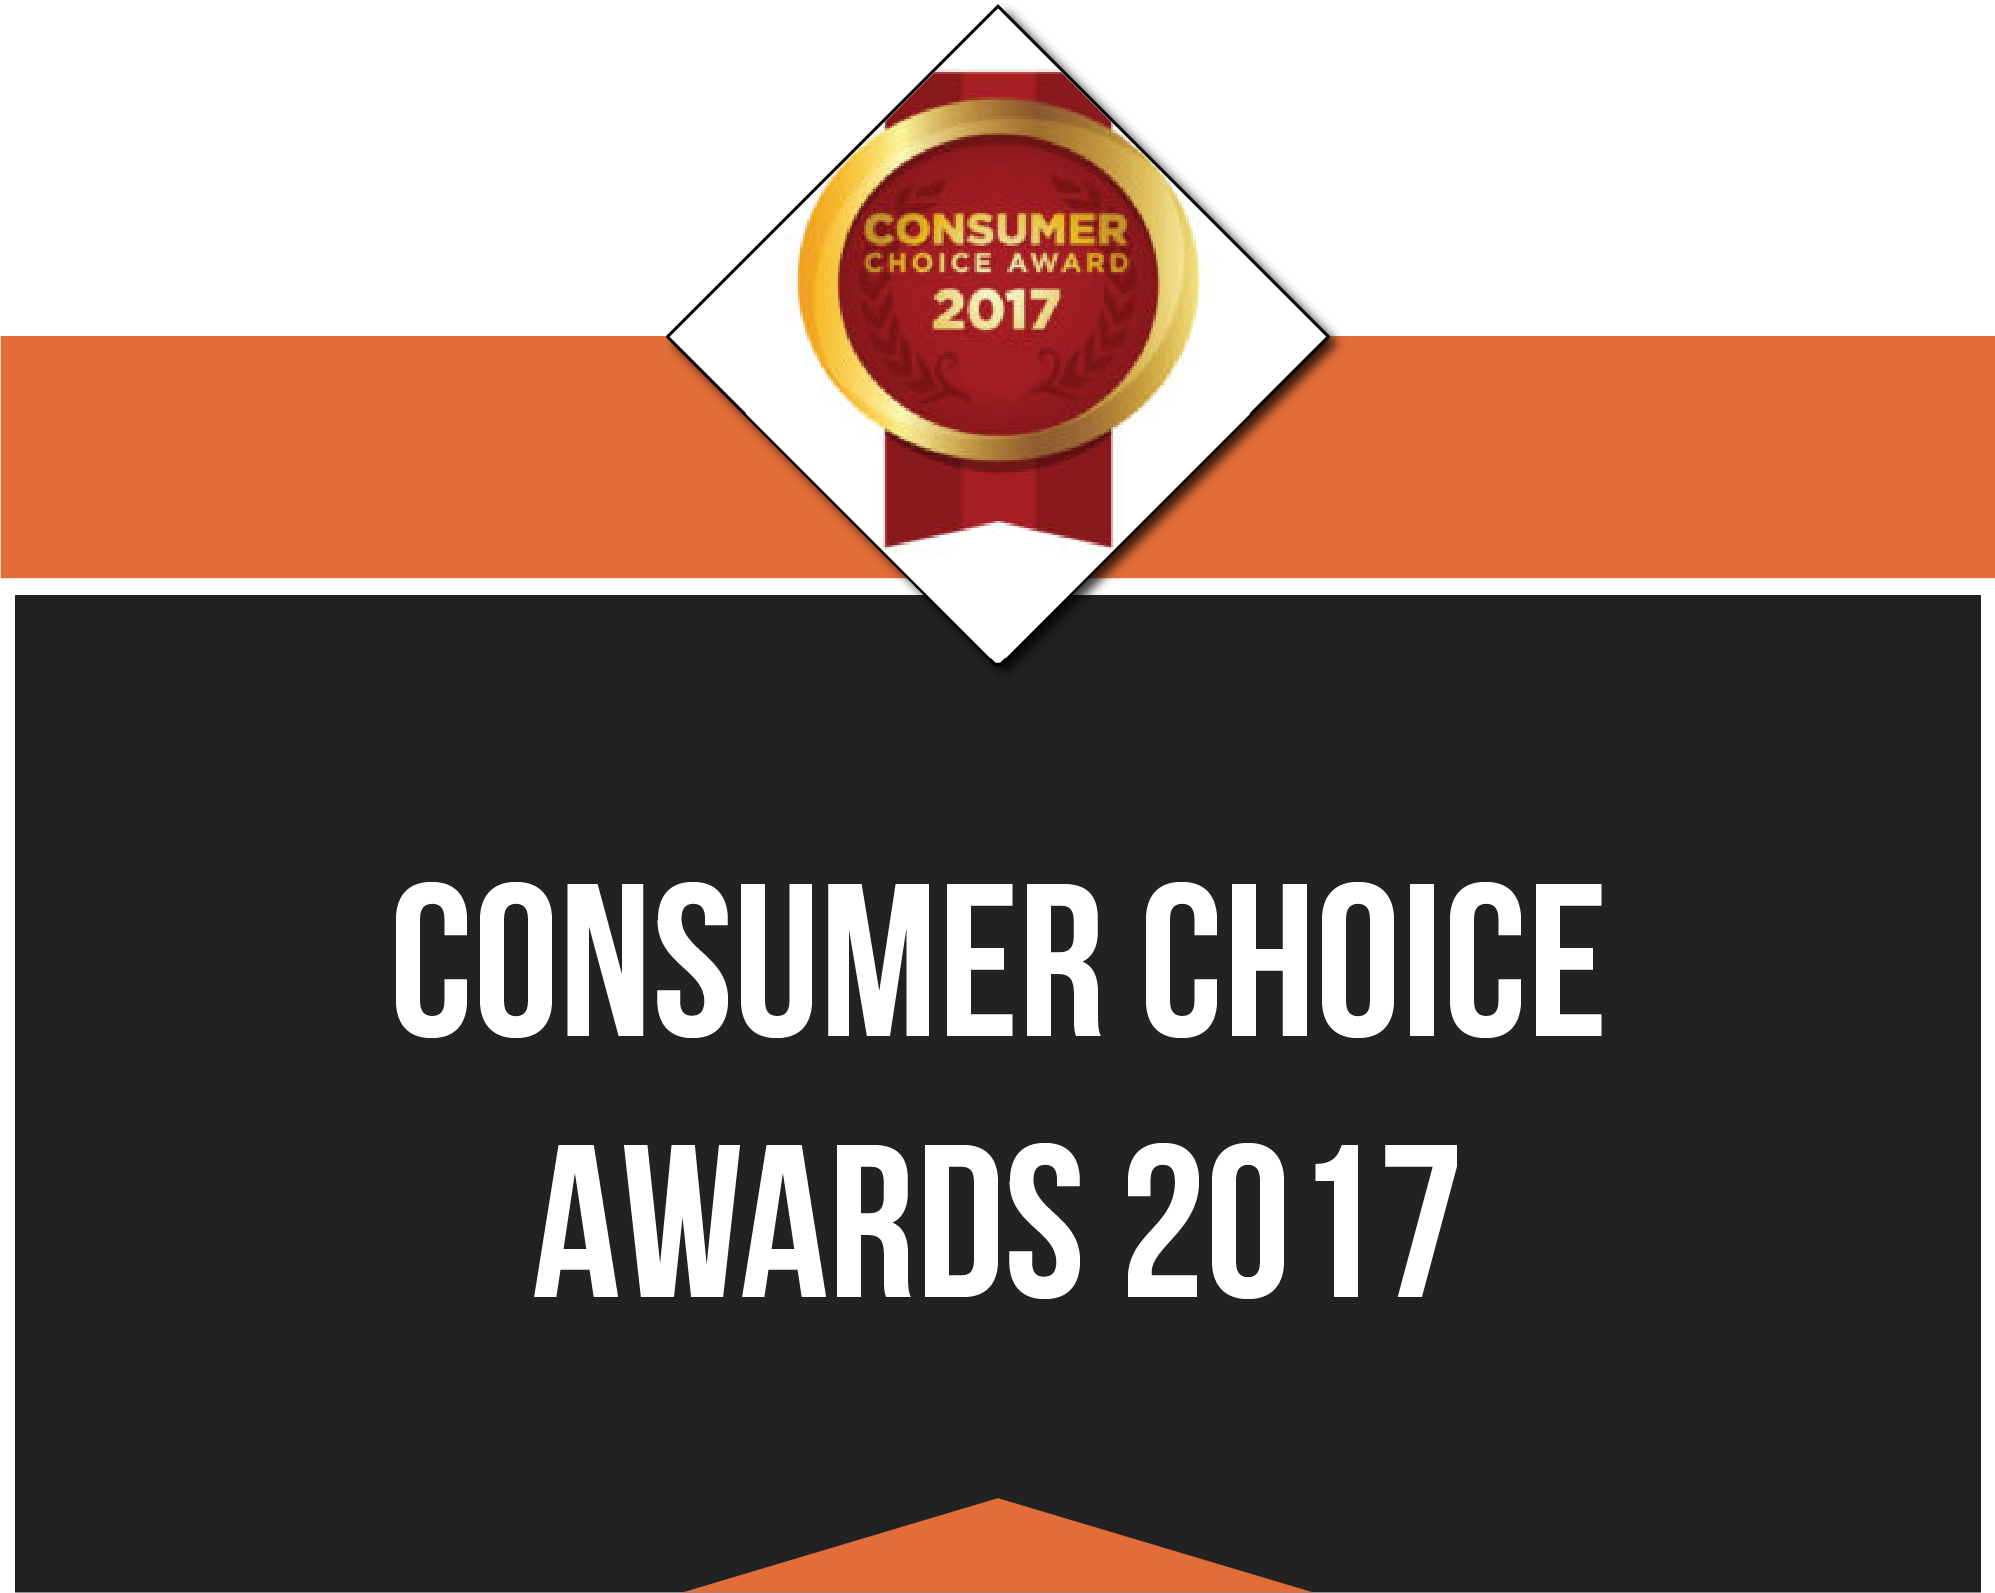 Award Banner for Consumer Choices Awards 2017